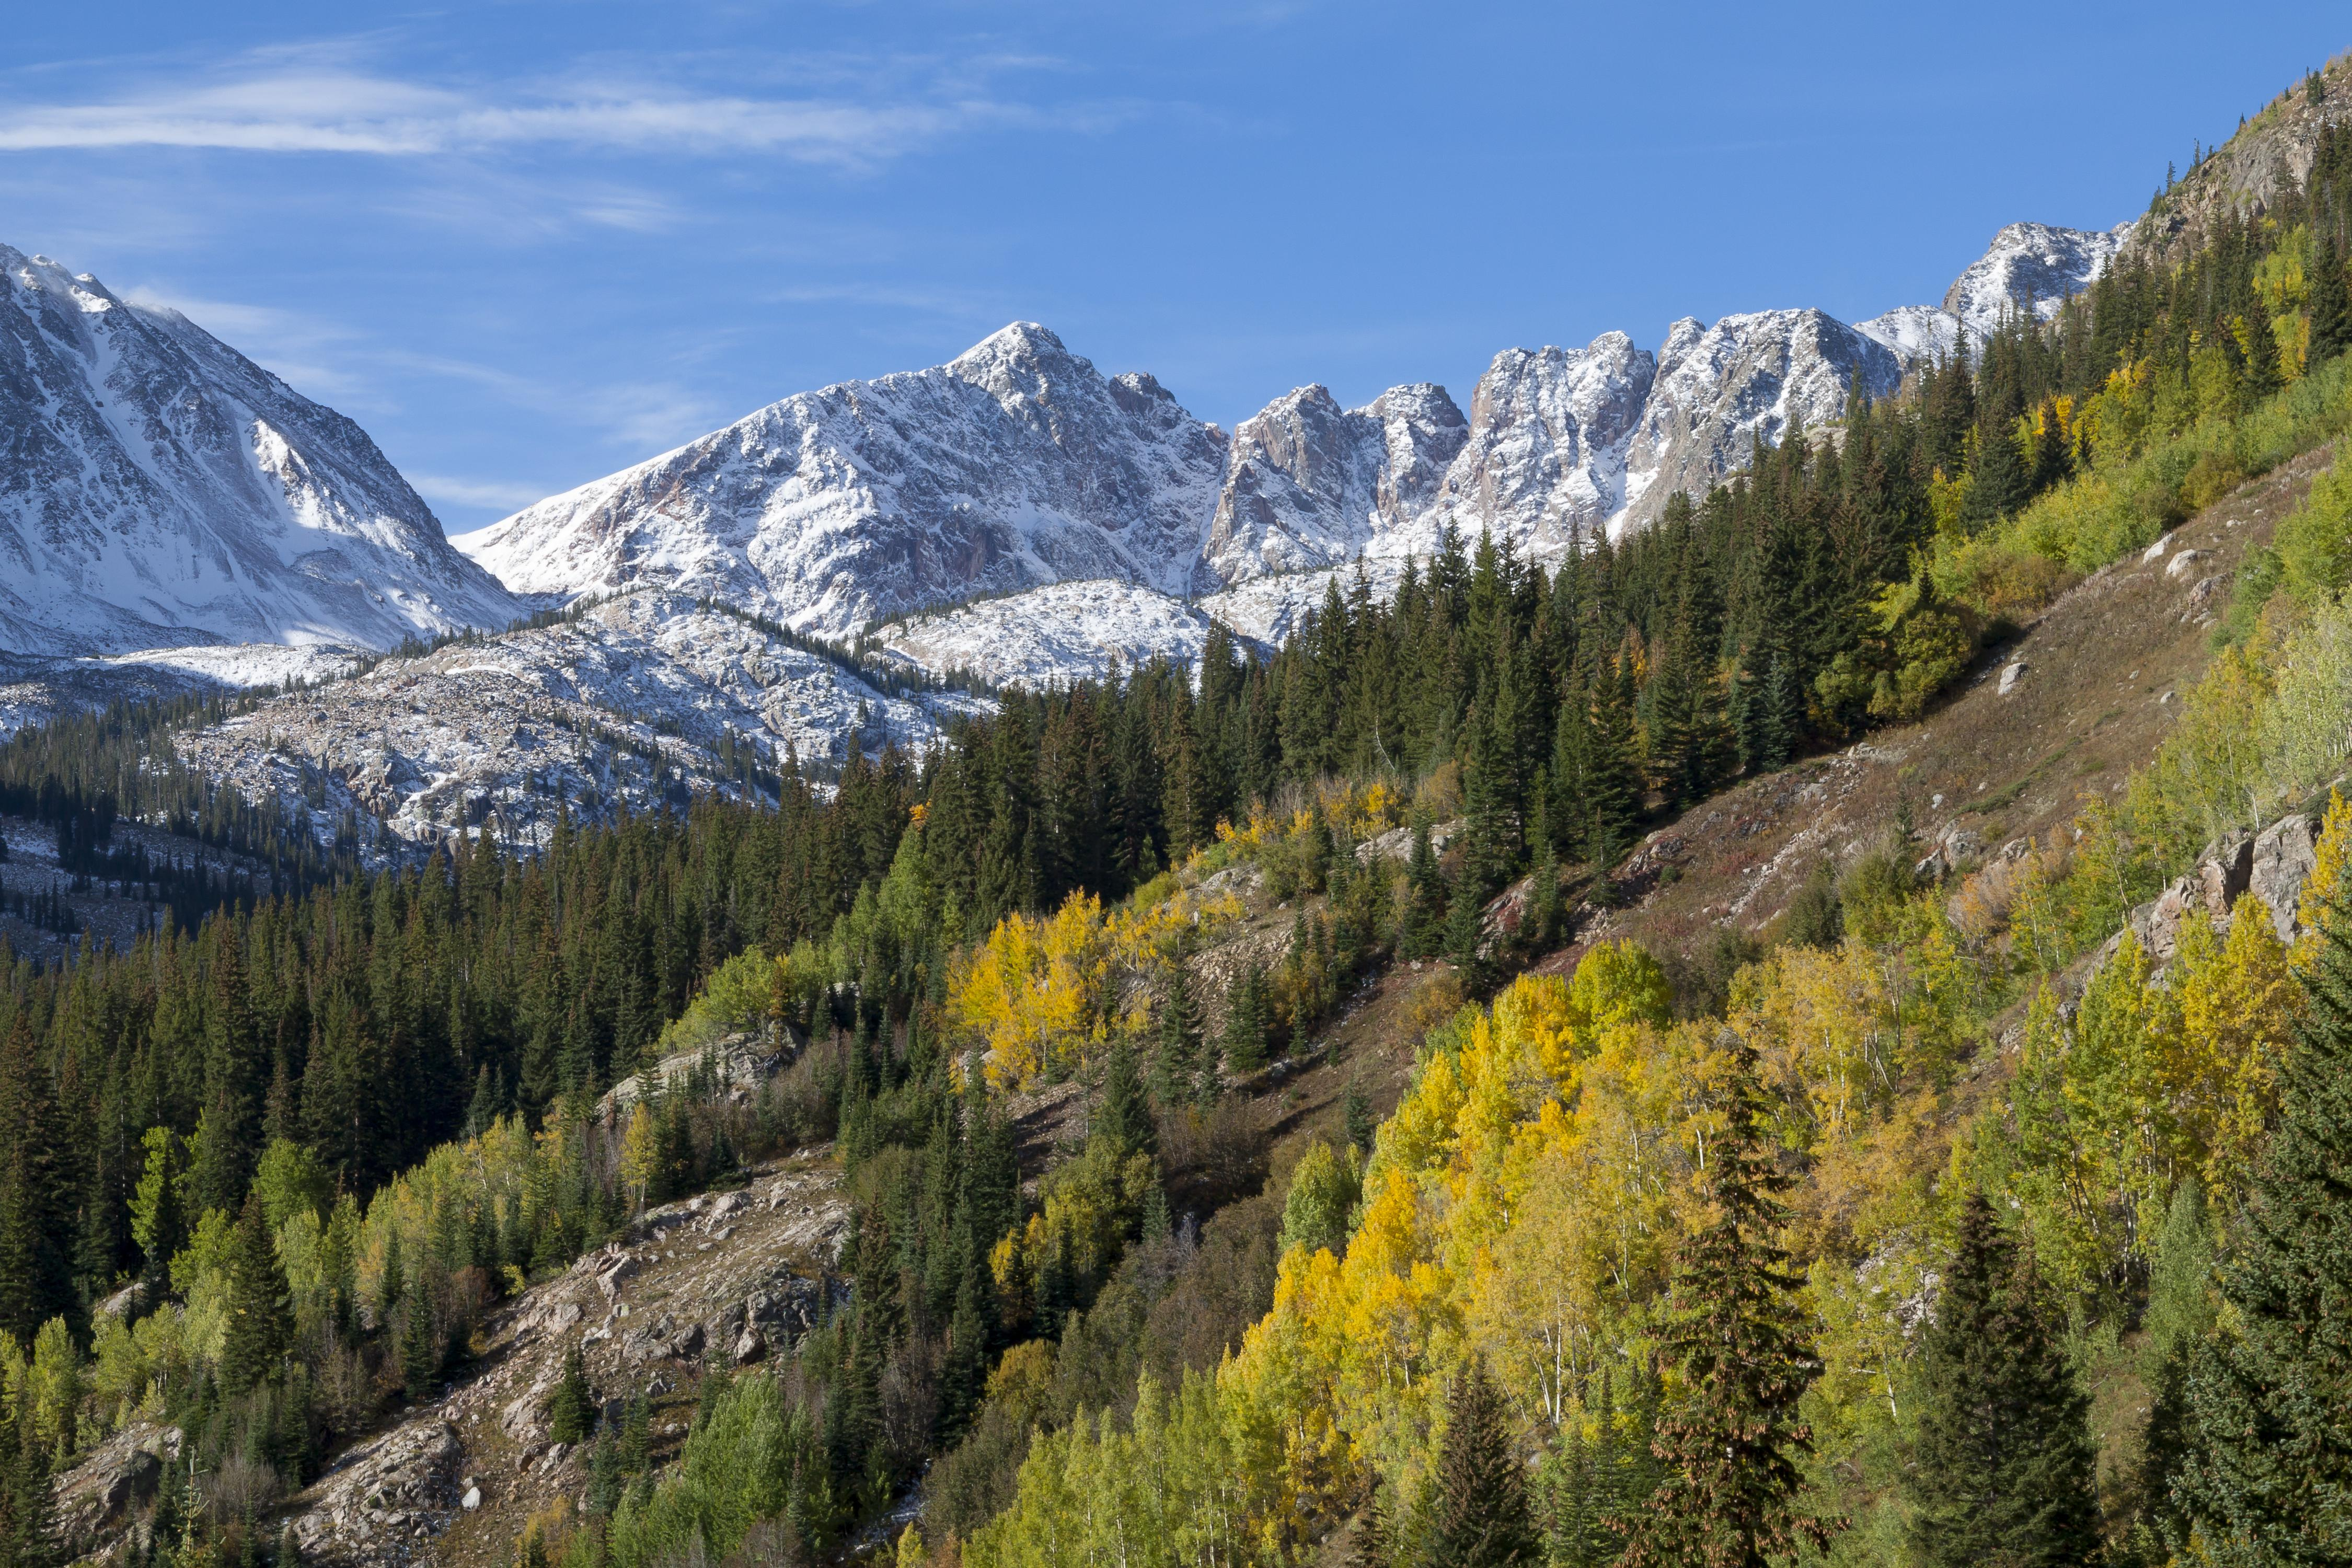 You can look forward to a memorable getaway in the incredible Rocky Mountains!